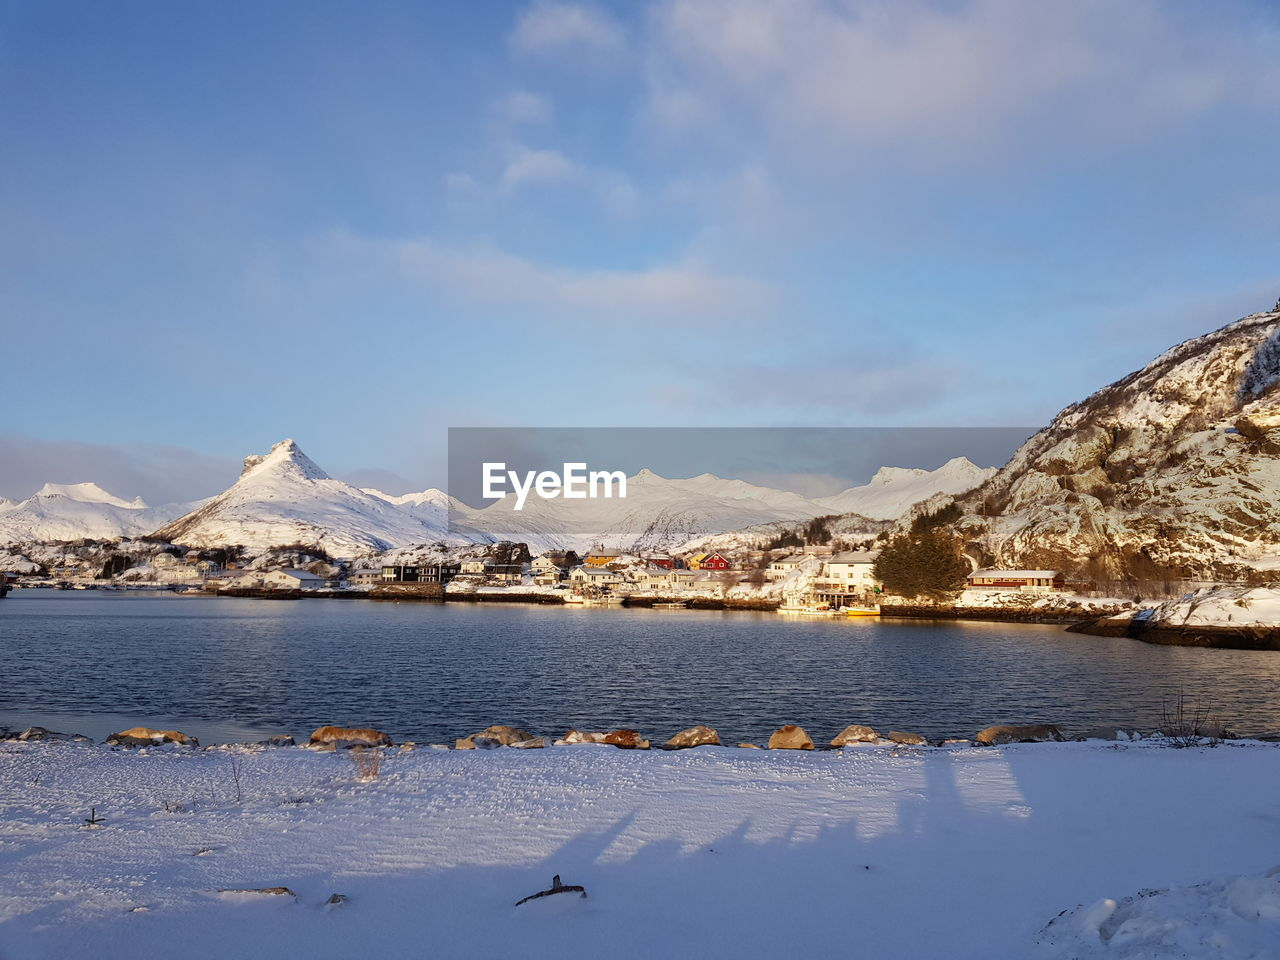 sky, mountain, water, cold temperature, snow, winter, scenics - nature, beauty in nature, nature, cloud - sky, architecture, no people, tranquil scene, tranquility, built structure, day, mountain range, building exterior, outdoors, snowcapped mountain